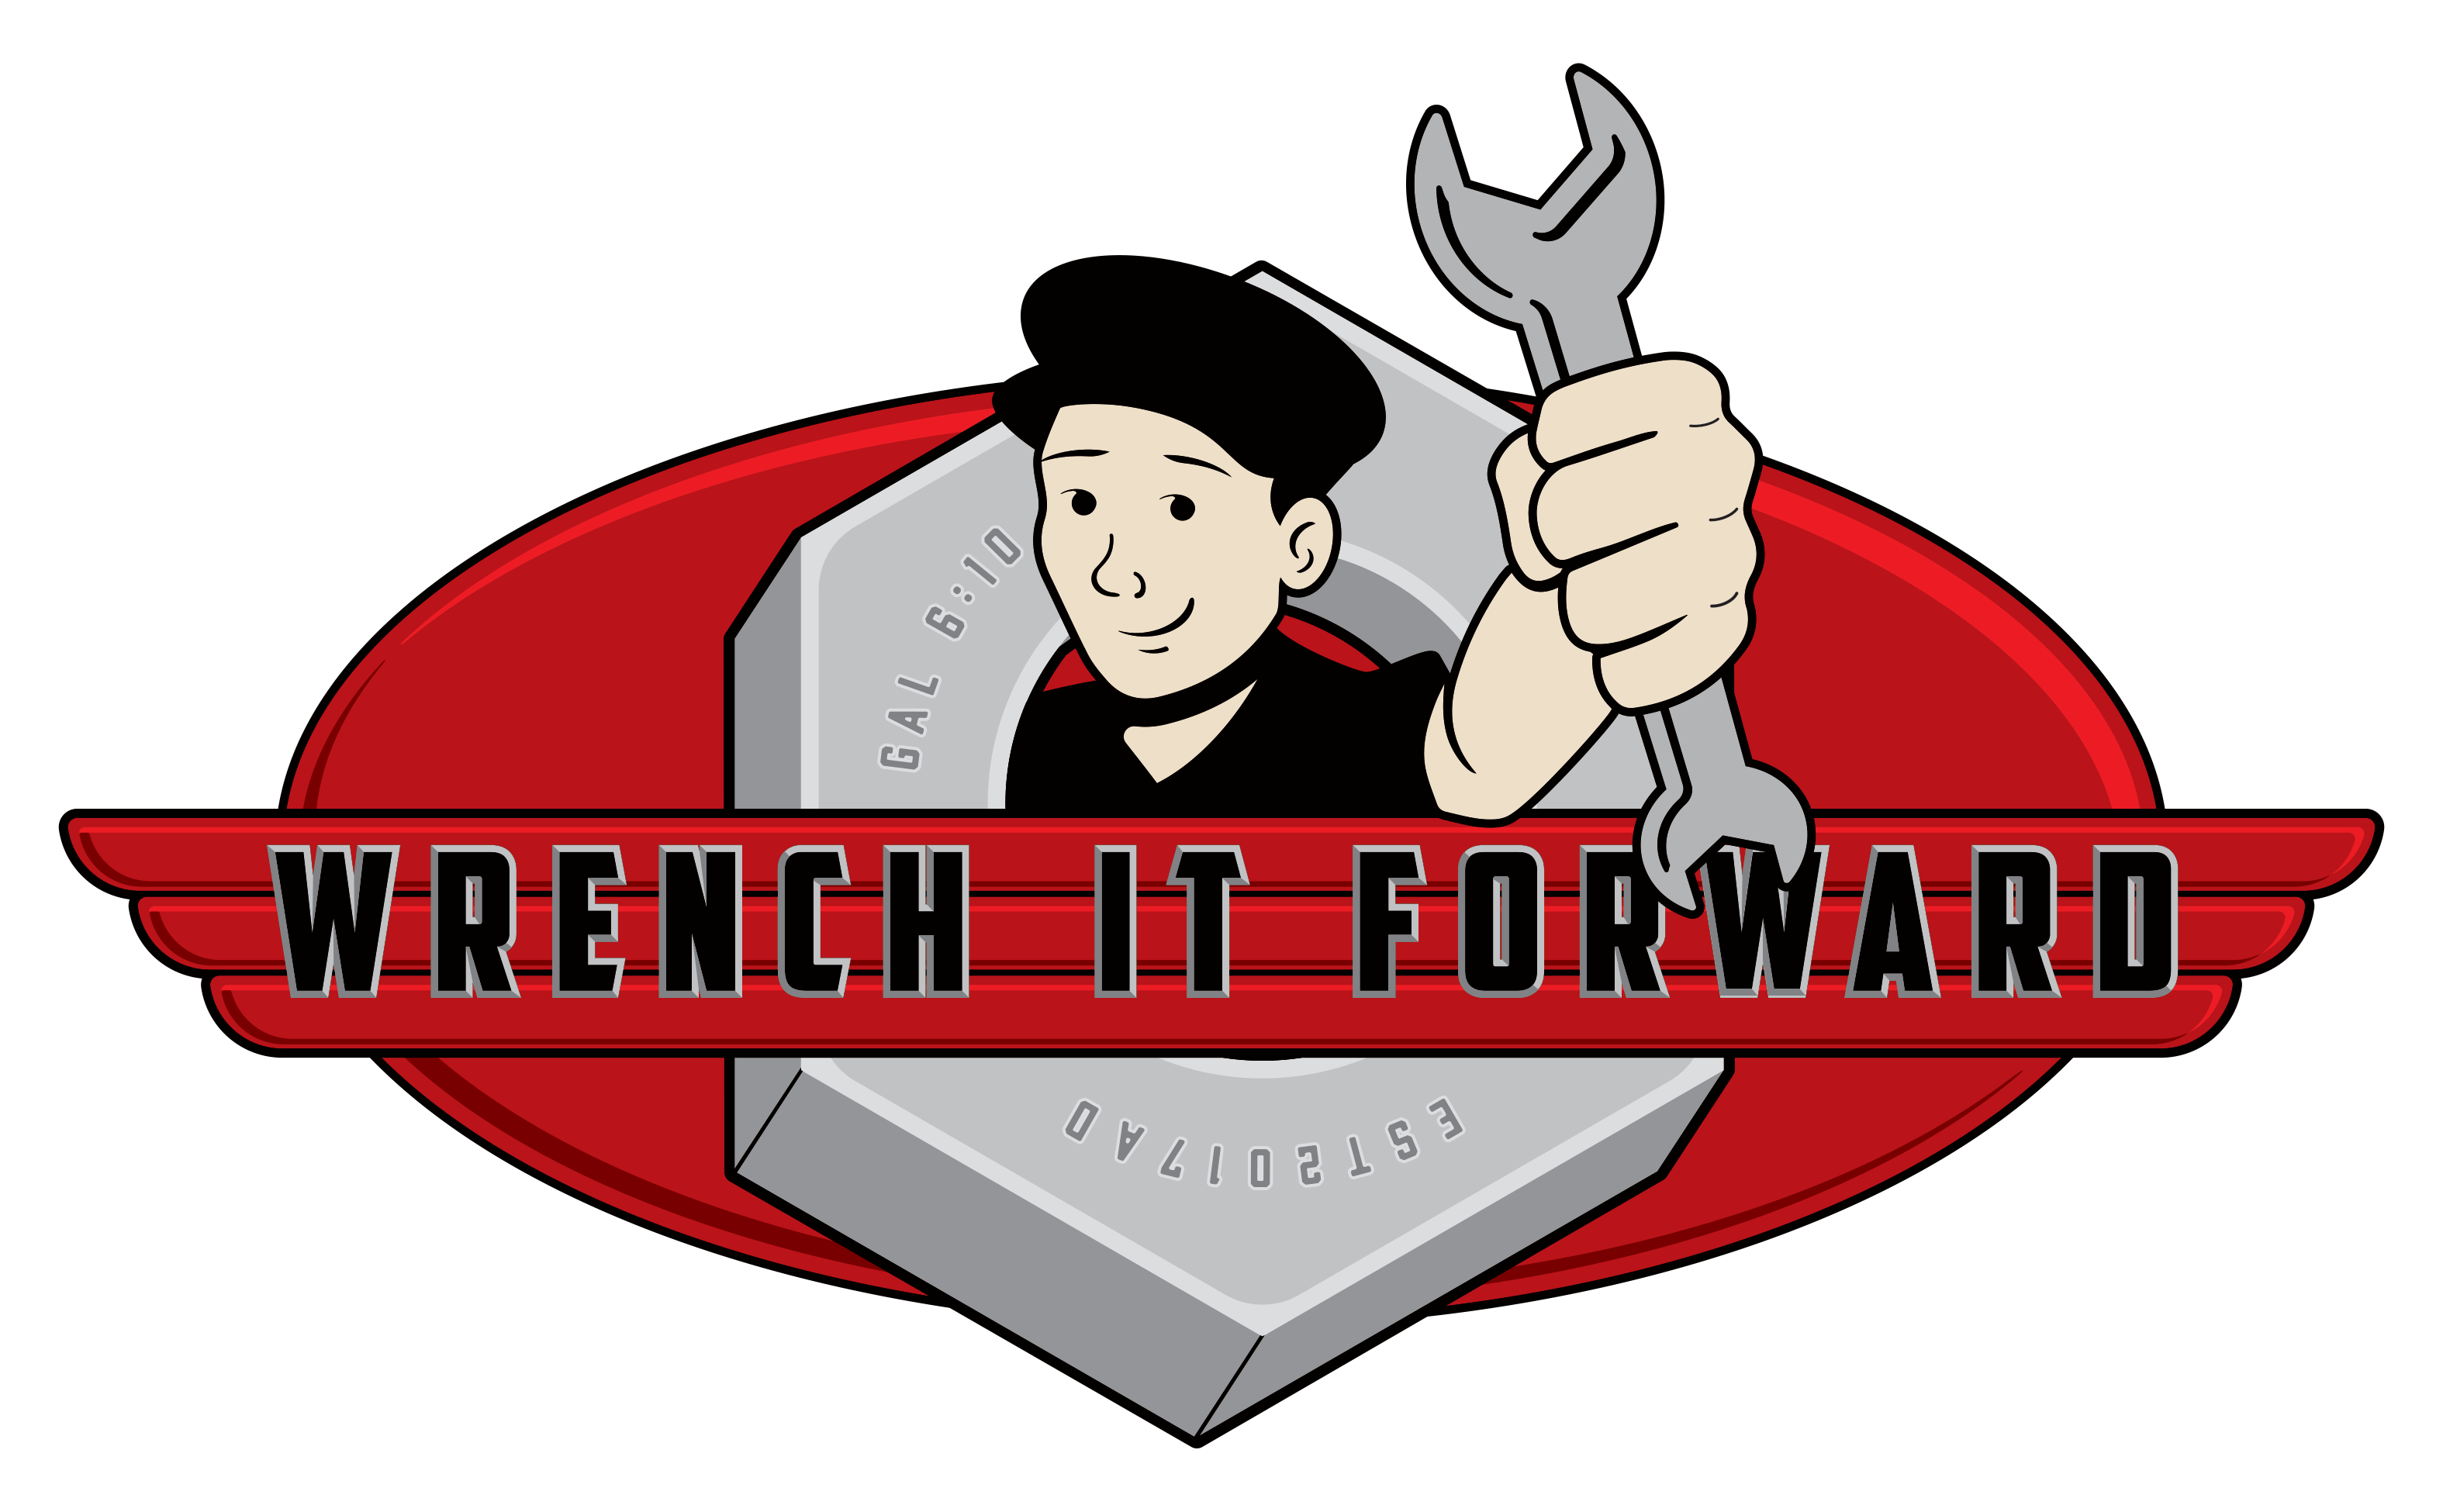 Wrench It Forward